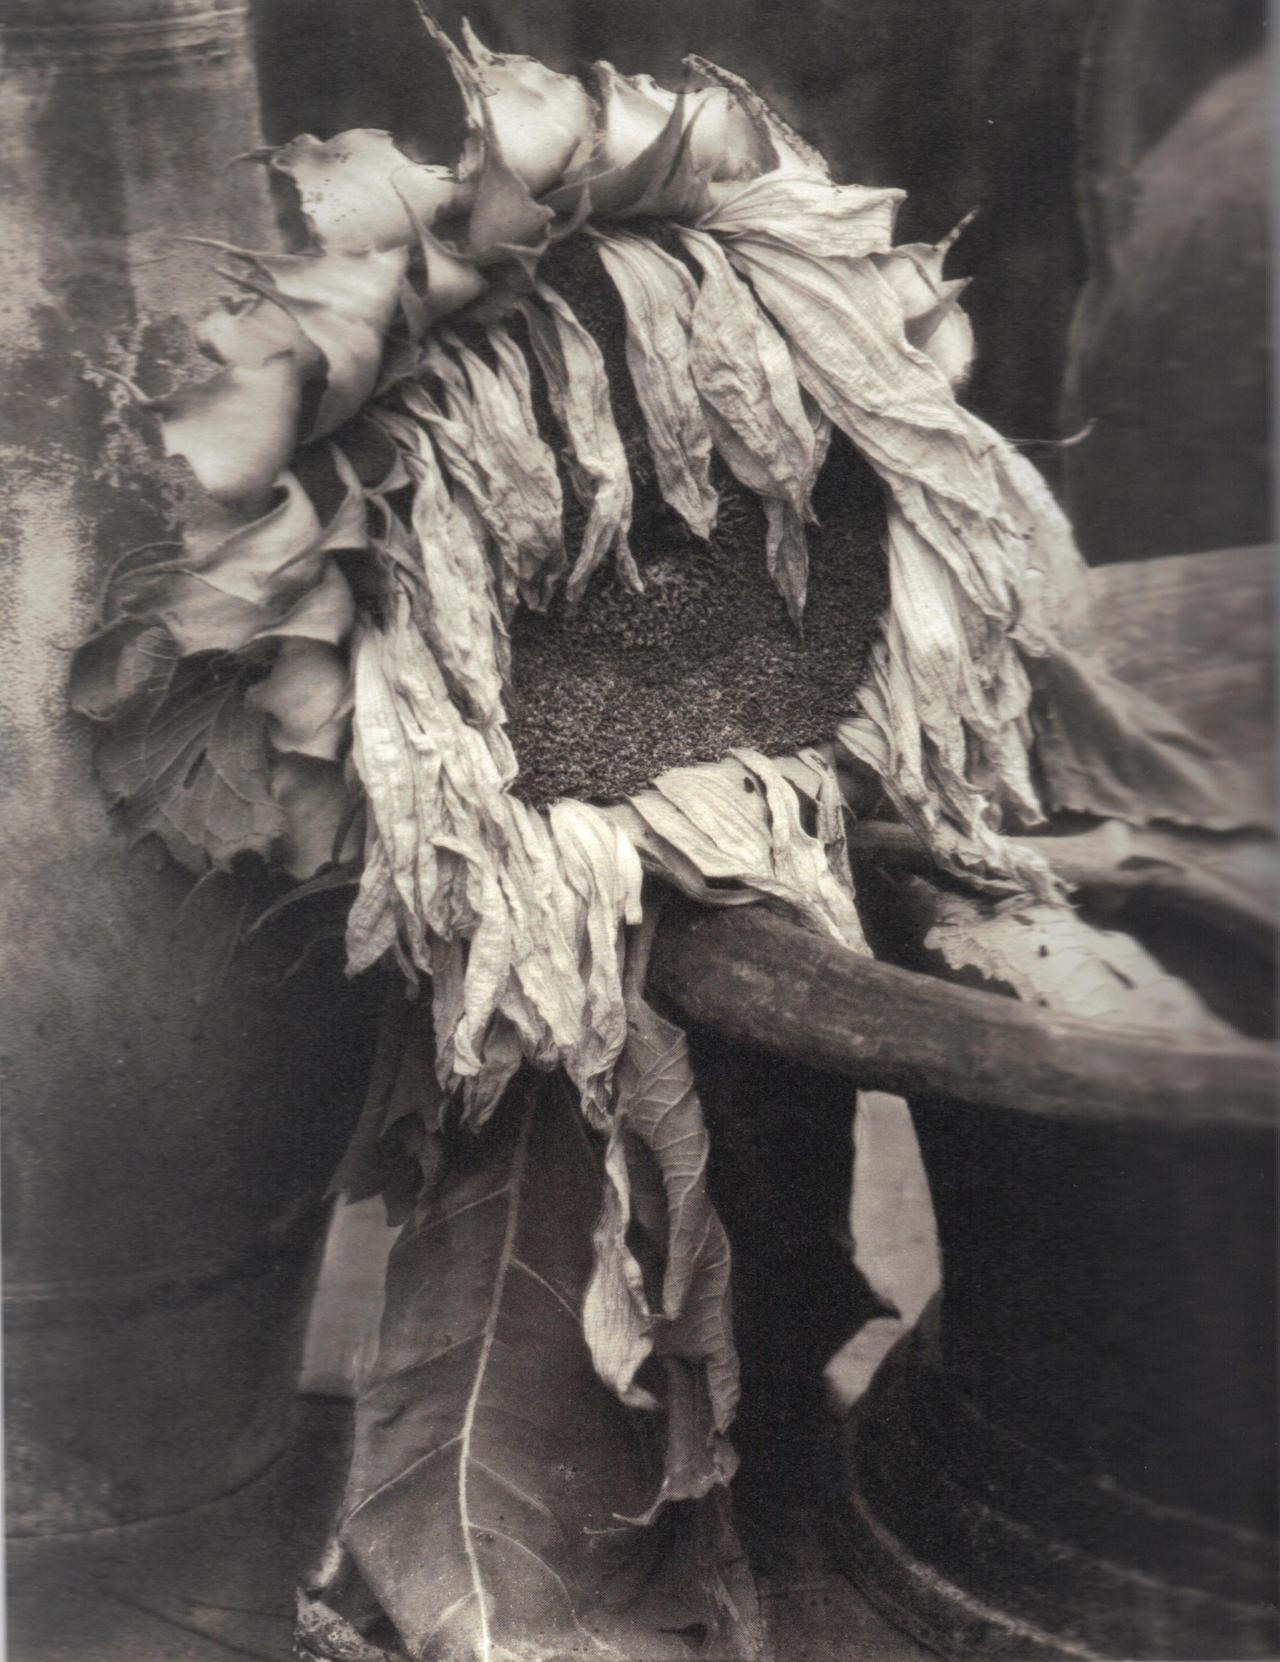 realityayslum:  Edward Steichen - Wilted Sunflower, c.1922. … from Edward Steichen: Lives in Photography, by Todd Brandow and William A. Ewing, Foundation for the Exhibition of Photography, and the Musee de l'Elysee, Lausanne, 2007.